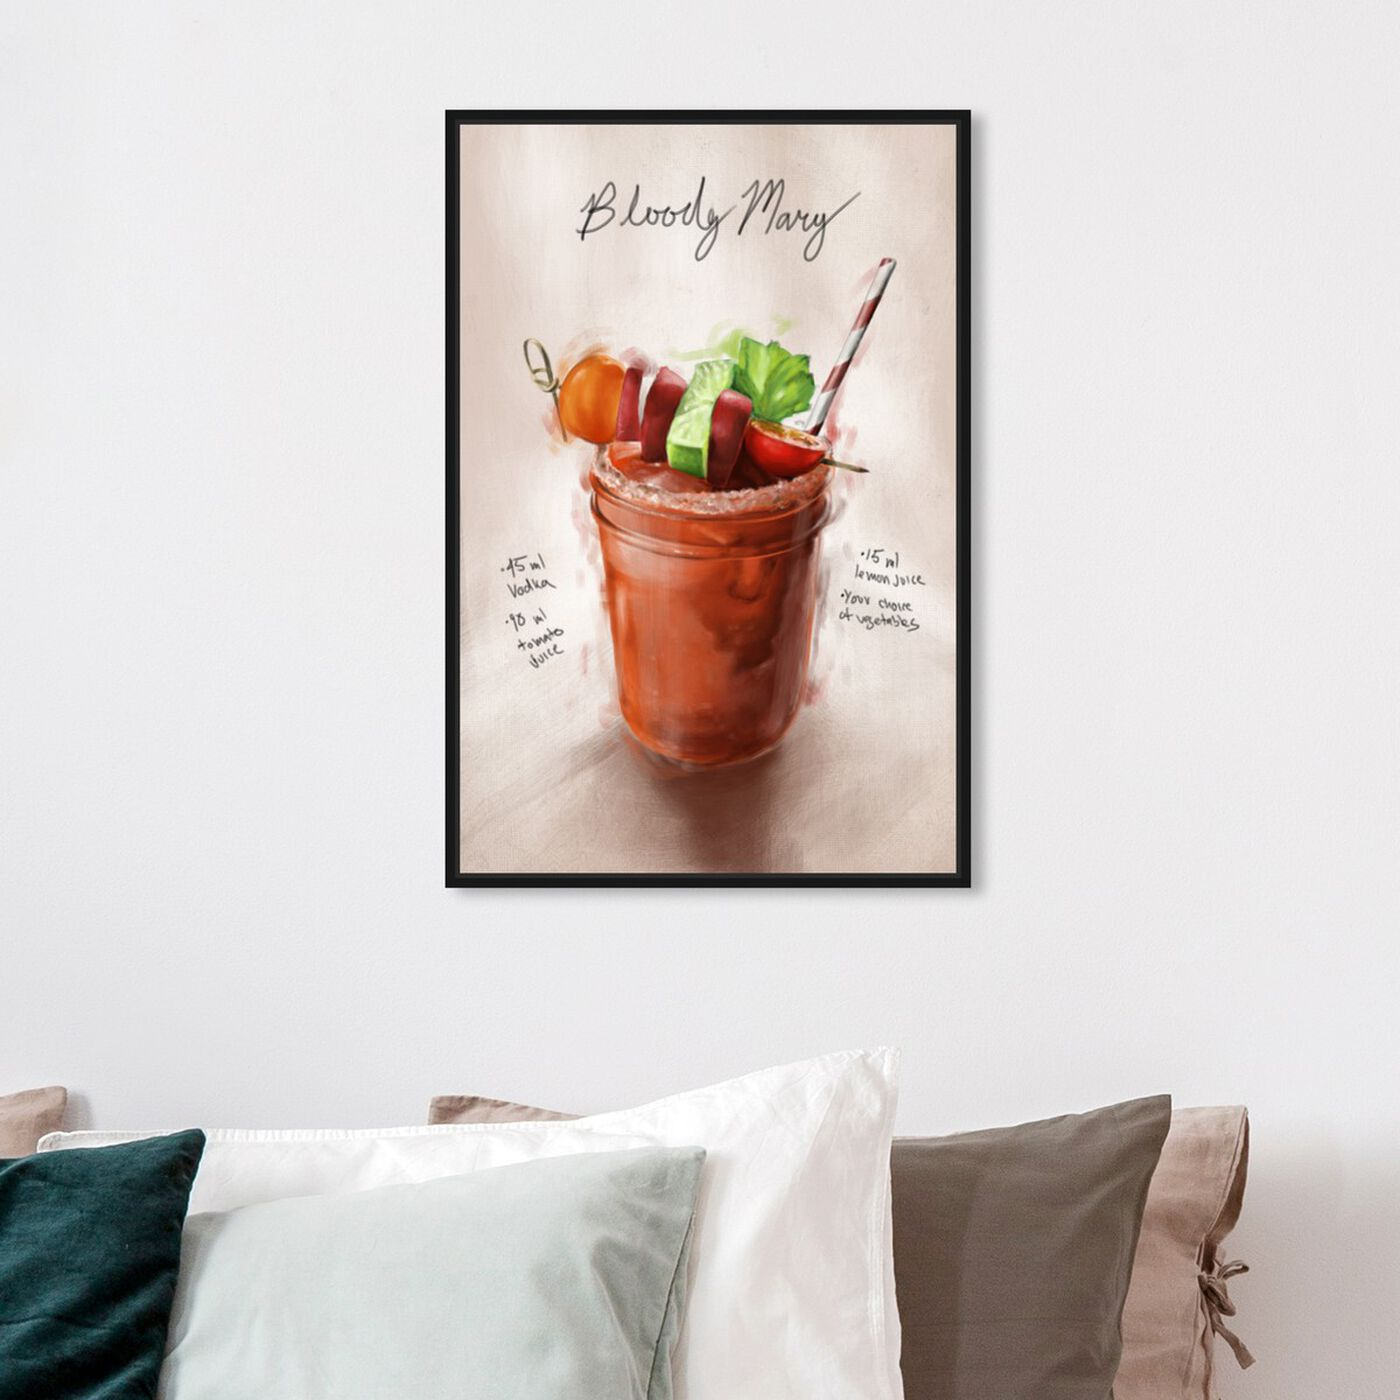 Hanging view of Bloody Mary featuring drinks and spirits and cocktails art.